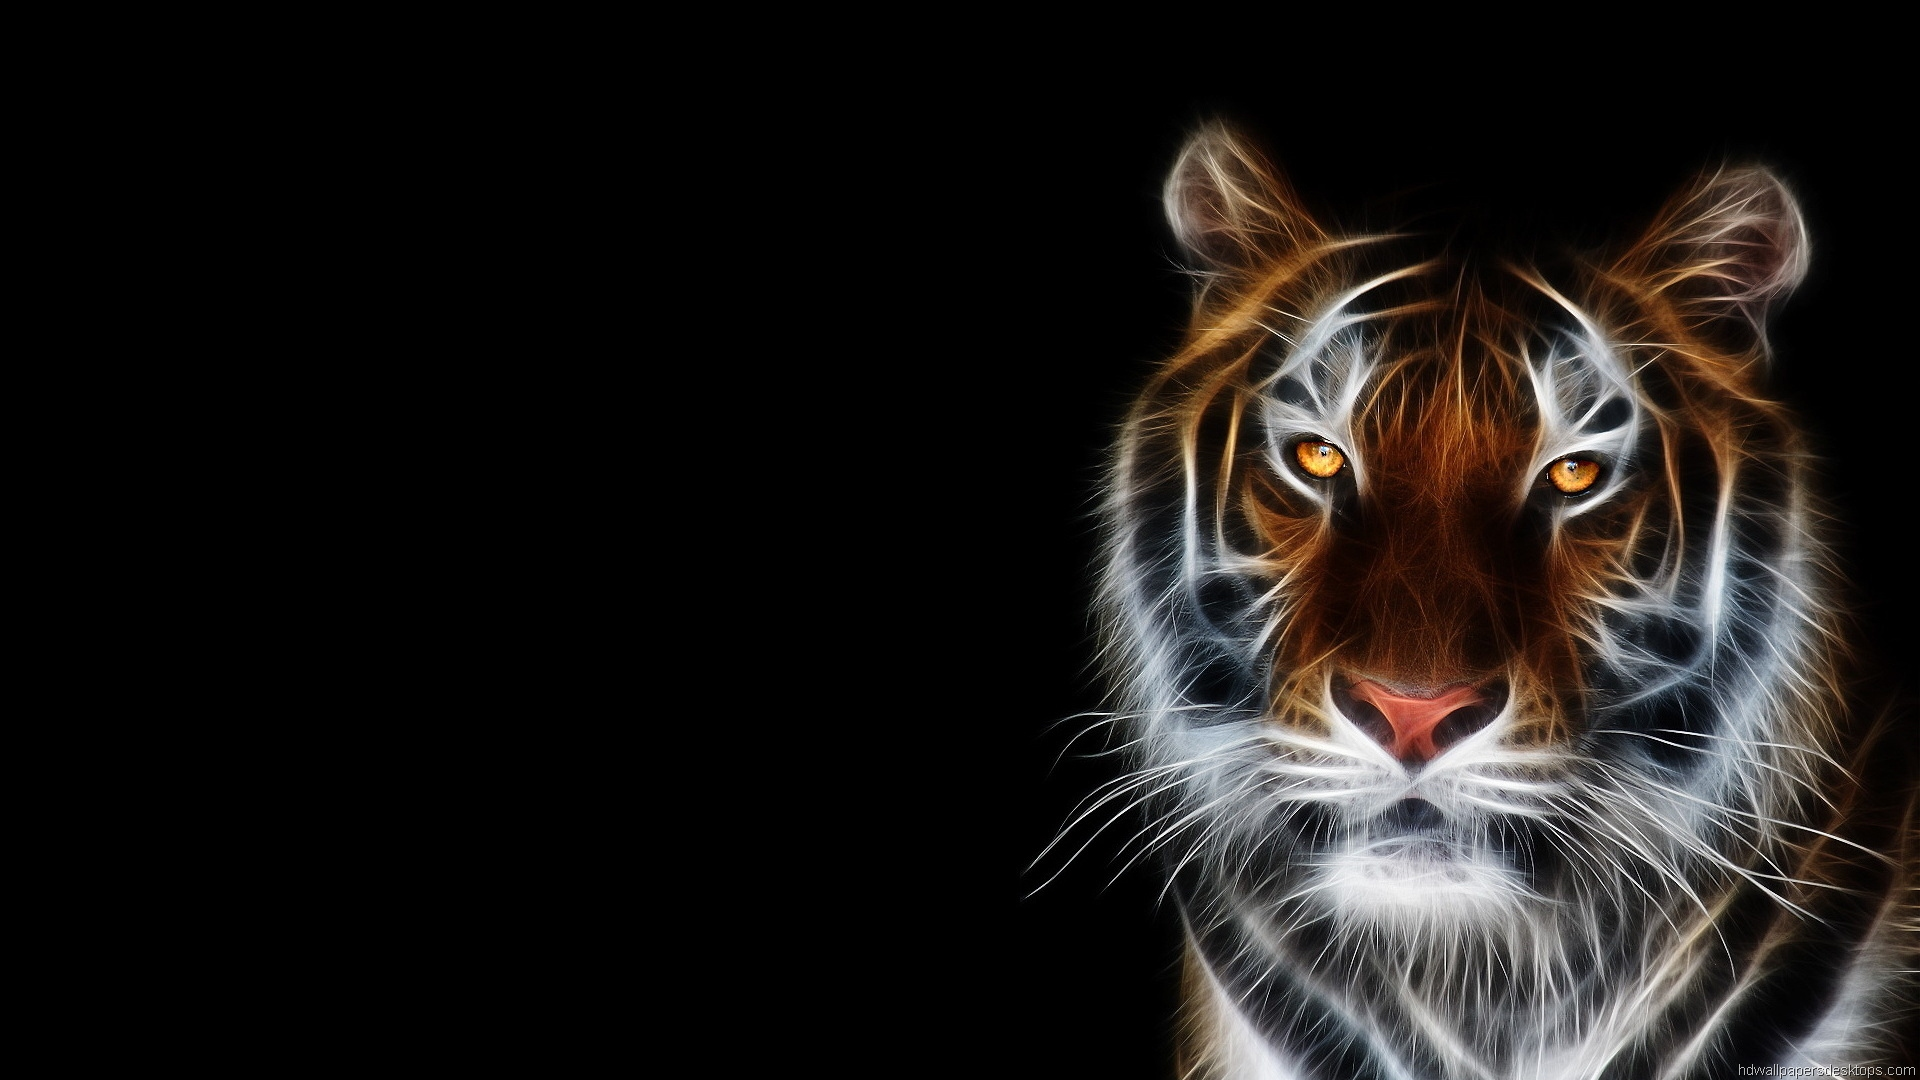 HD 3D Wallpapers Animals Widescreen Desktop Backgrounds Photos 1920x1080